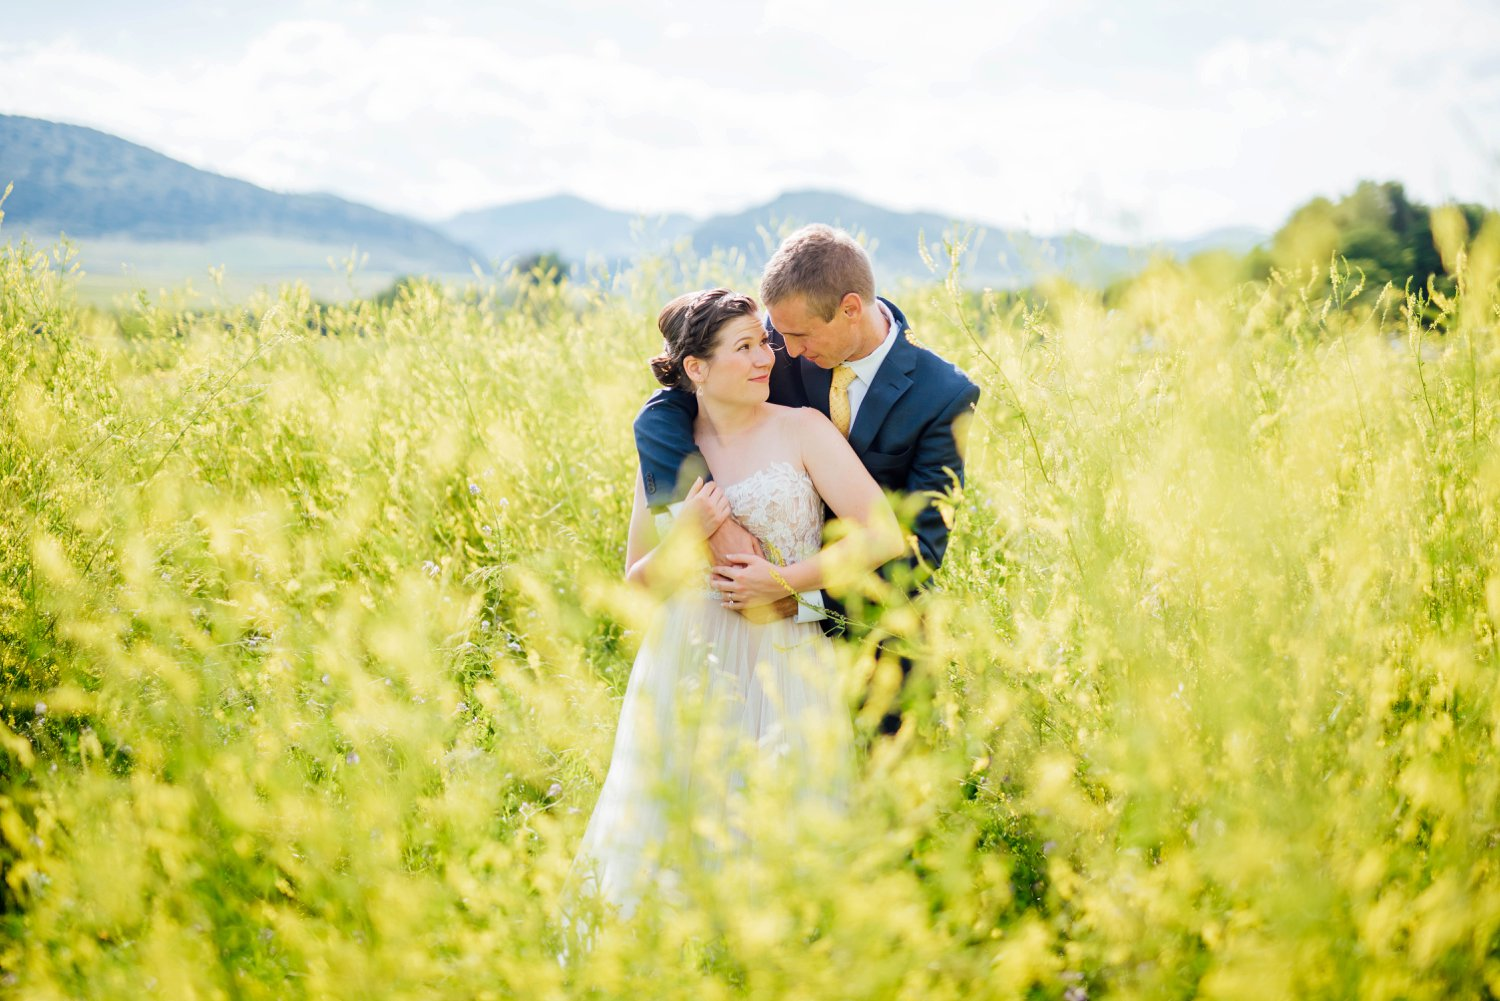 I love this idea of having the bride and groom stand in the field with the tall grass for some of their couple photos. Outdoor weddings are the best!Photo by Maddie Mae Photography